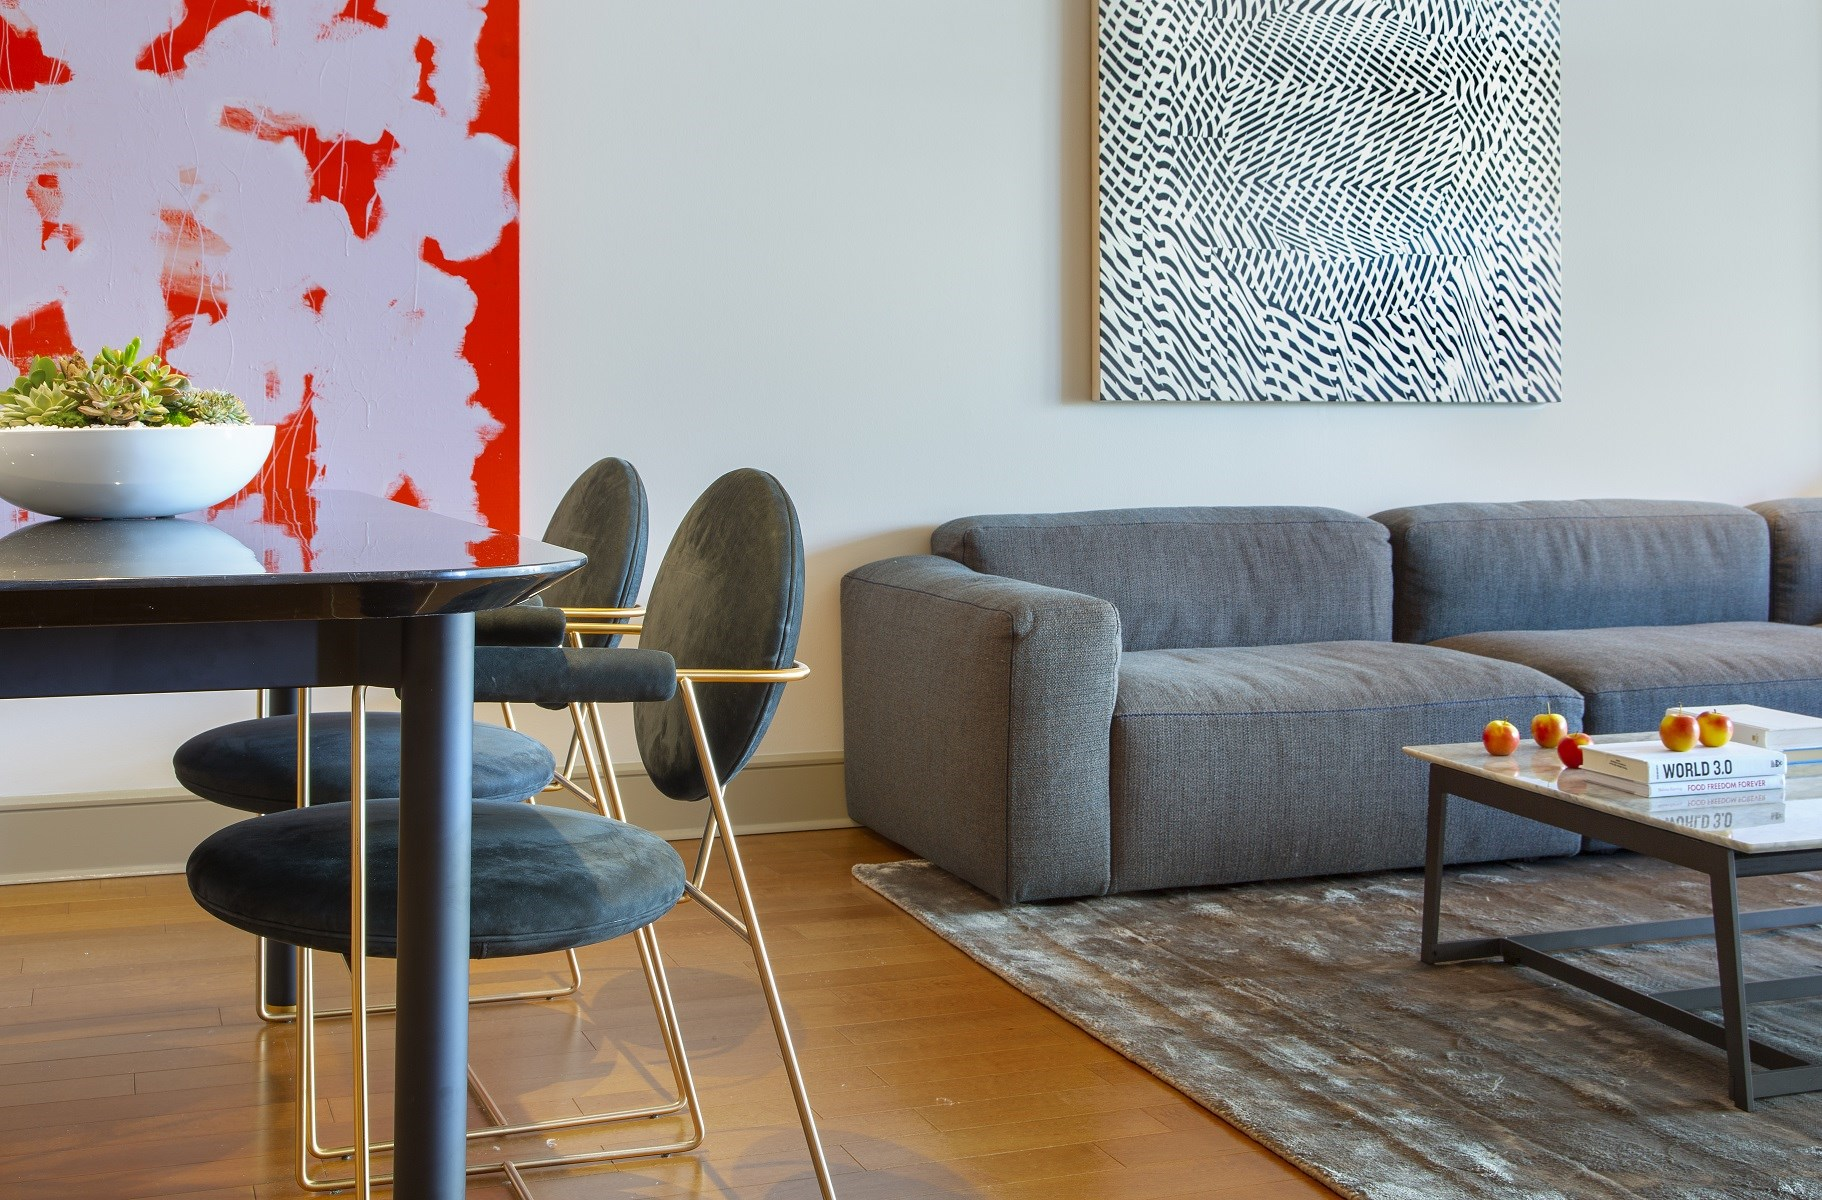 Westwood-Luxury-Apartments-Wilshire-Victoria-Unit-401-Living-Room-With-Dining-Table-And-Chairs